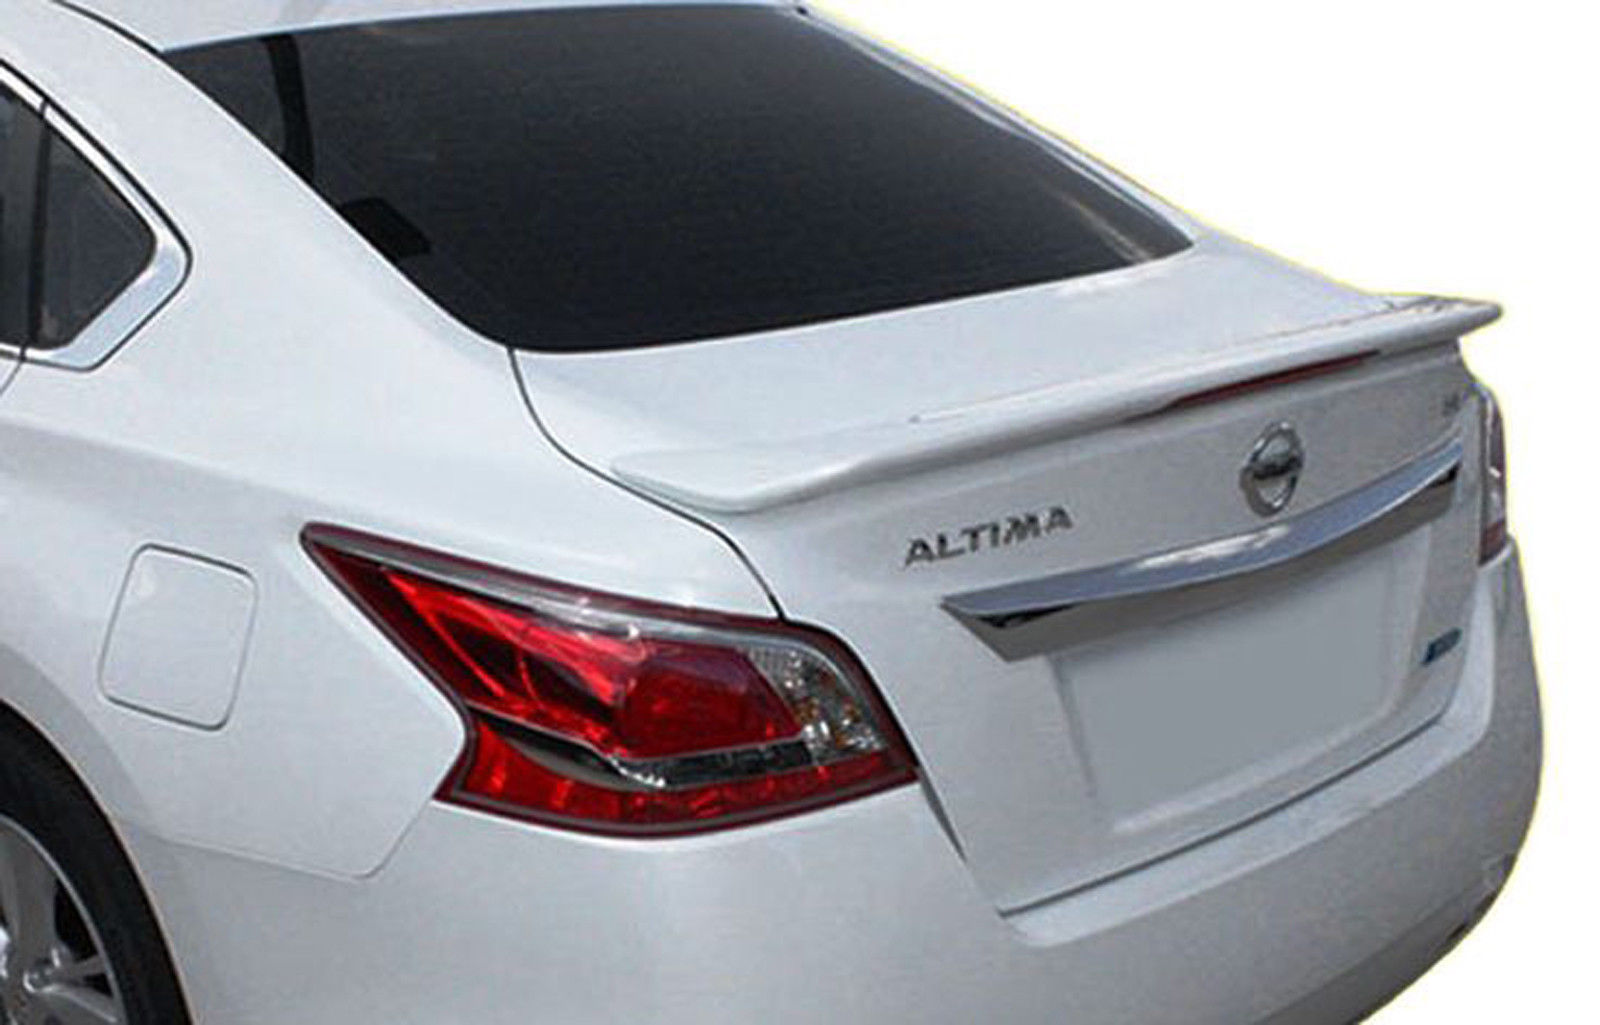 Awesome Painted Spoiler For A Nissan Altima Factory Style 2016 2018